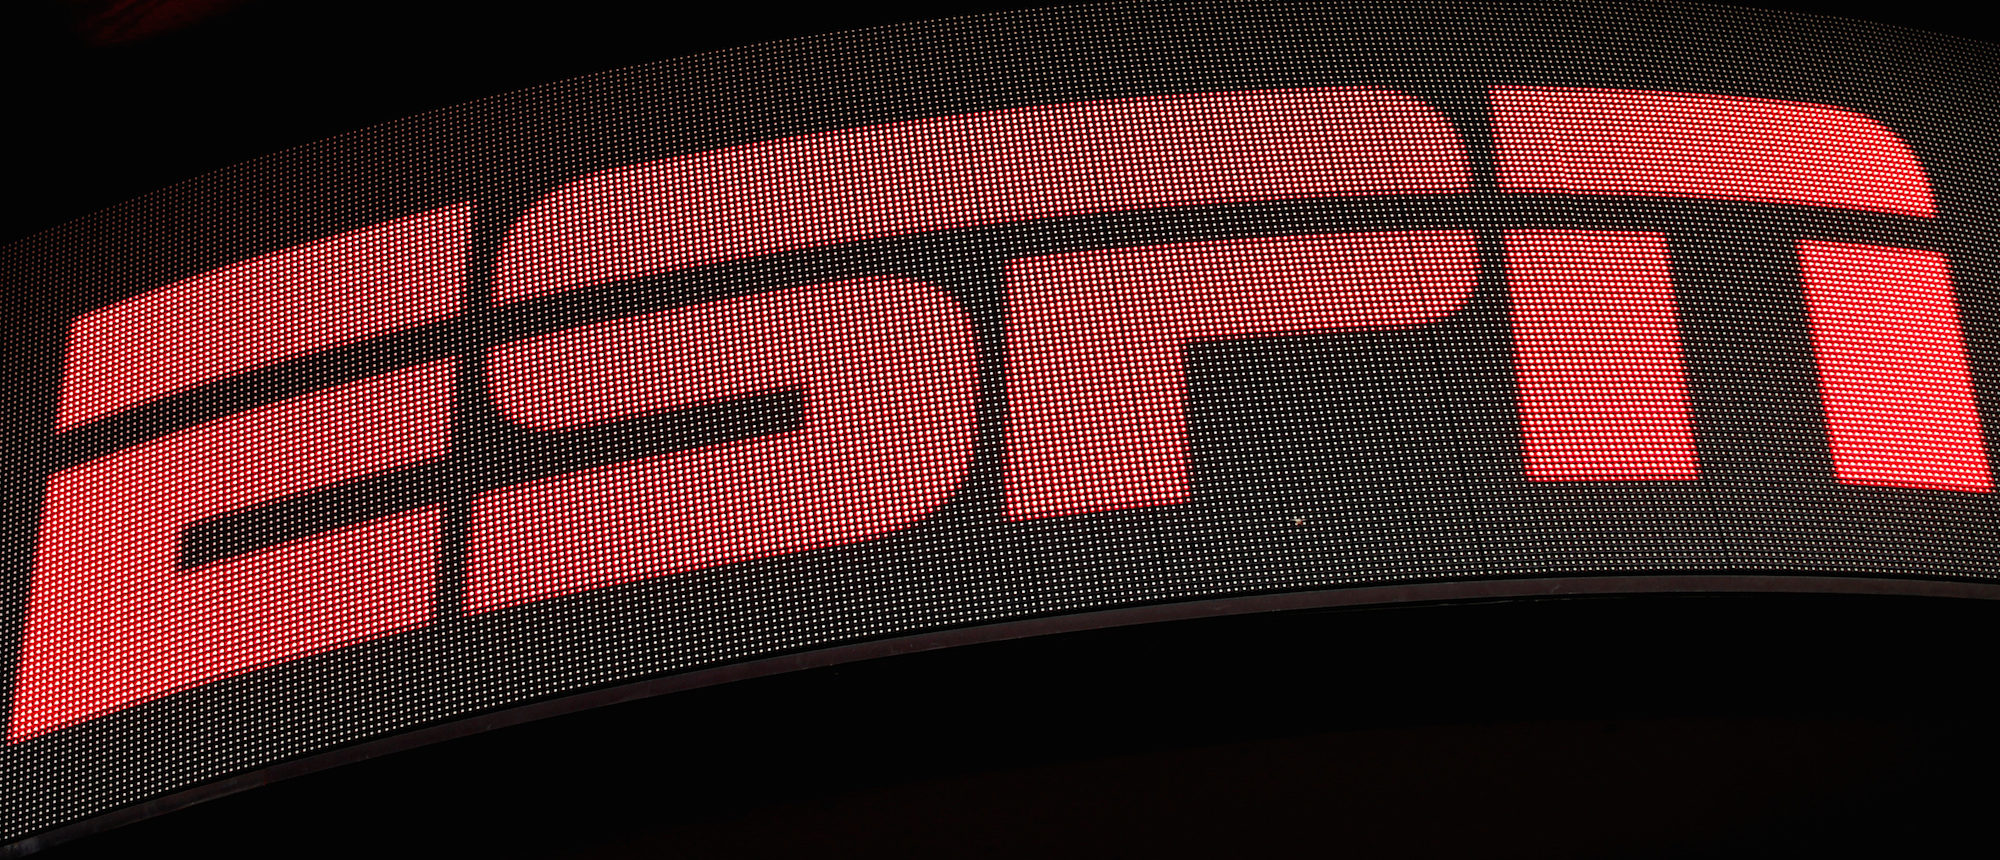 The ESPN logo is seen on an electronic display in Times Square in New York City, August 23, 2017. REUTERS/Mike Segar